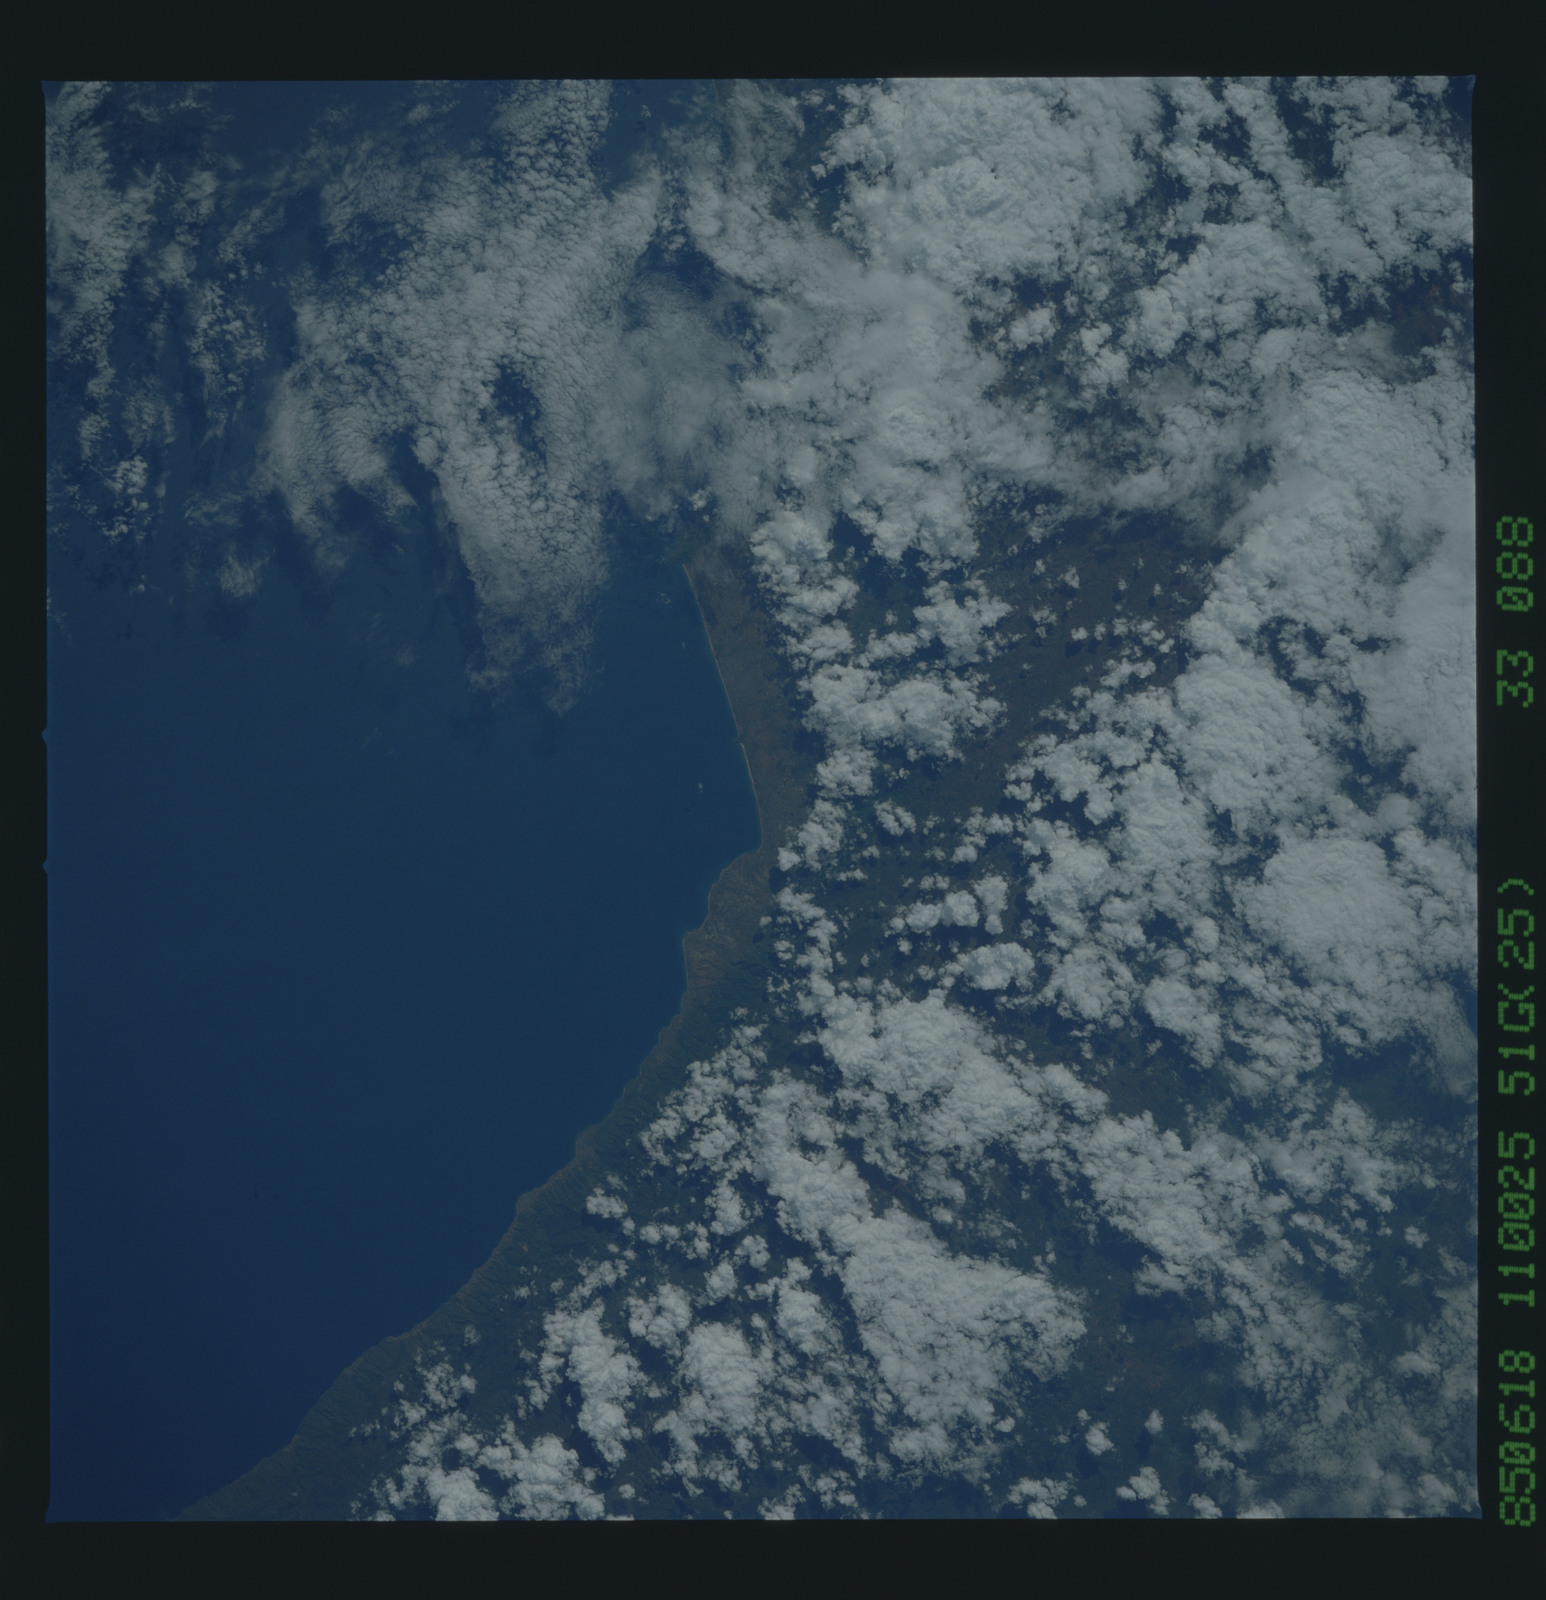 51G-33-088 - STS-51G - STS-51G earth observations